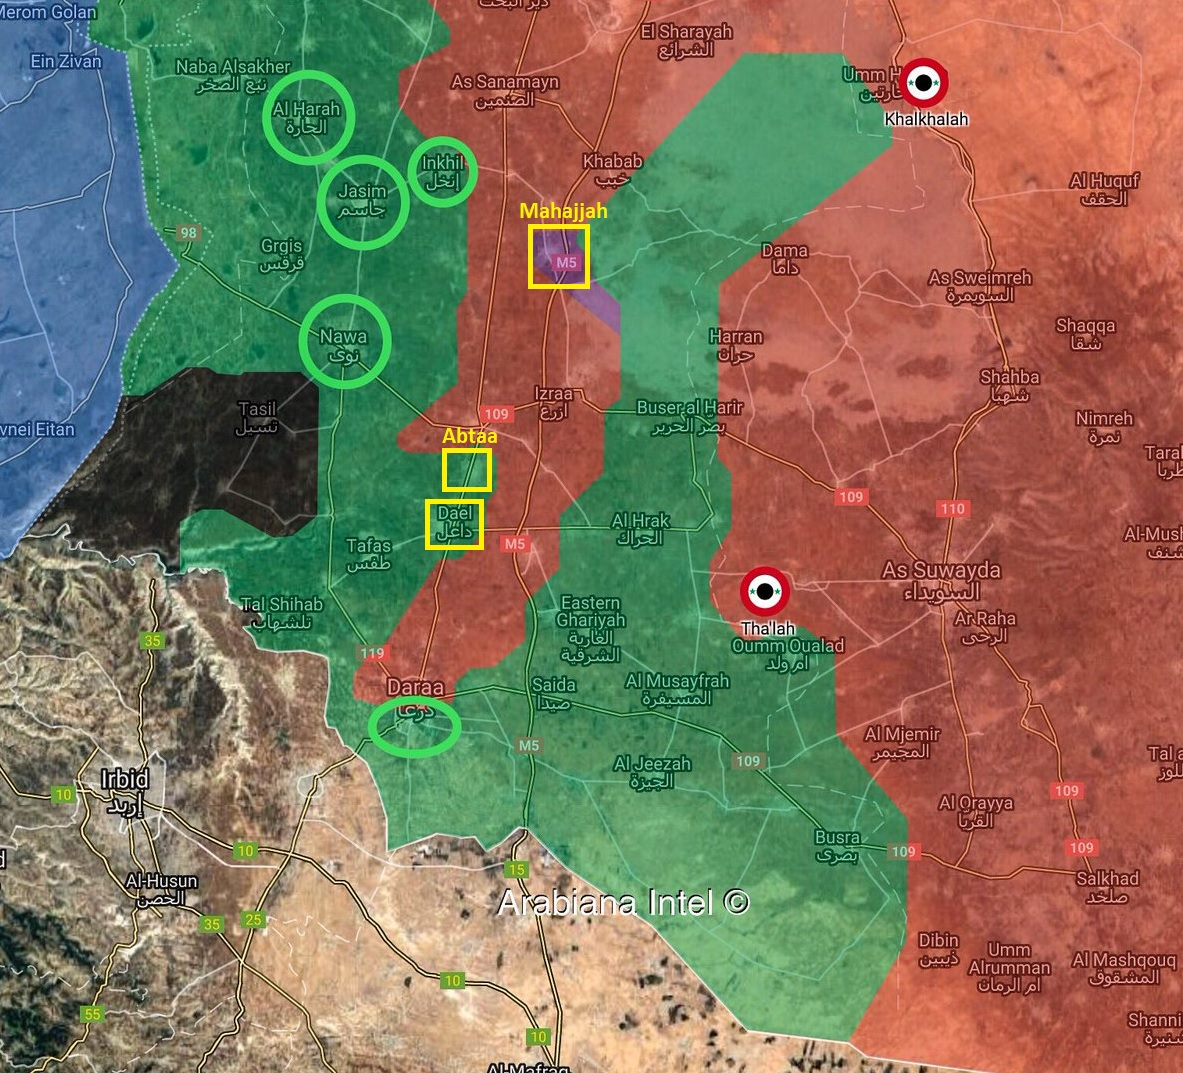 Russia And Syrian Army Send Final Warning To Militants In Several Key Towns In Daraa (Map)